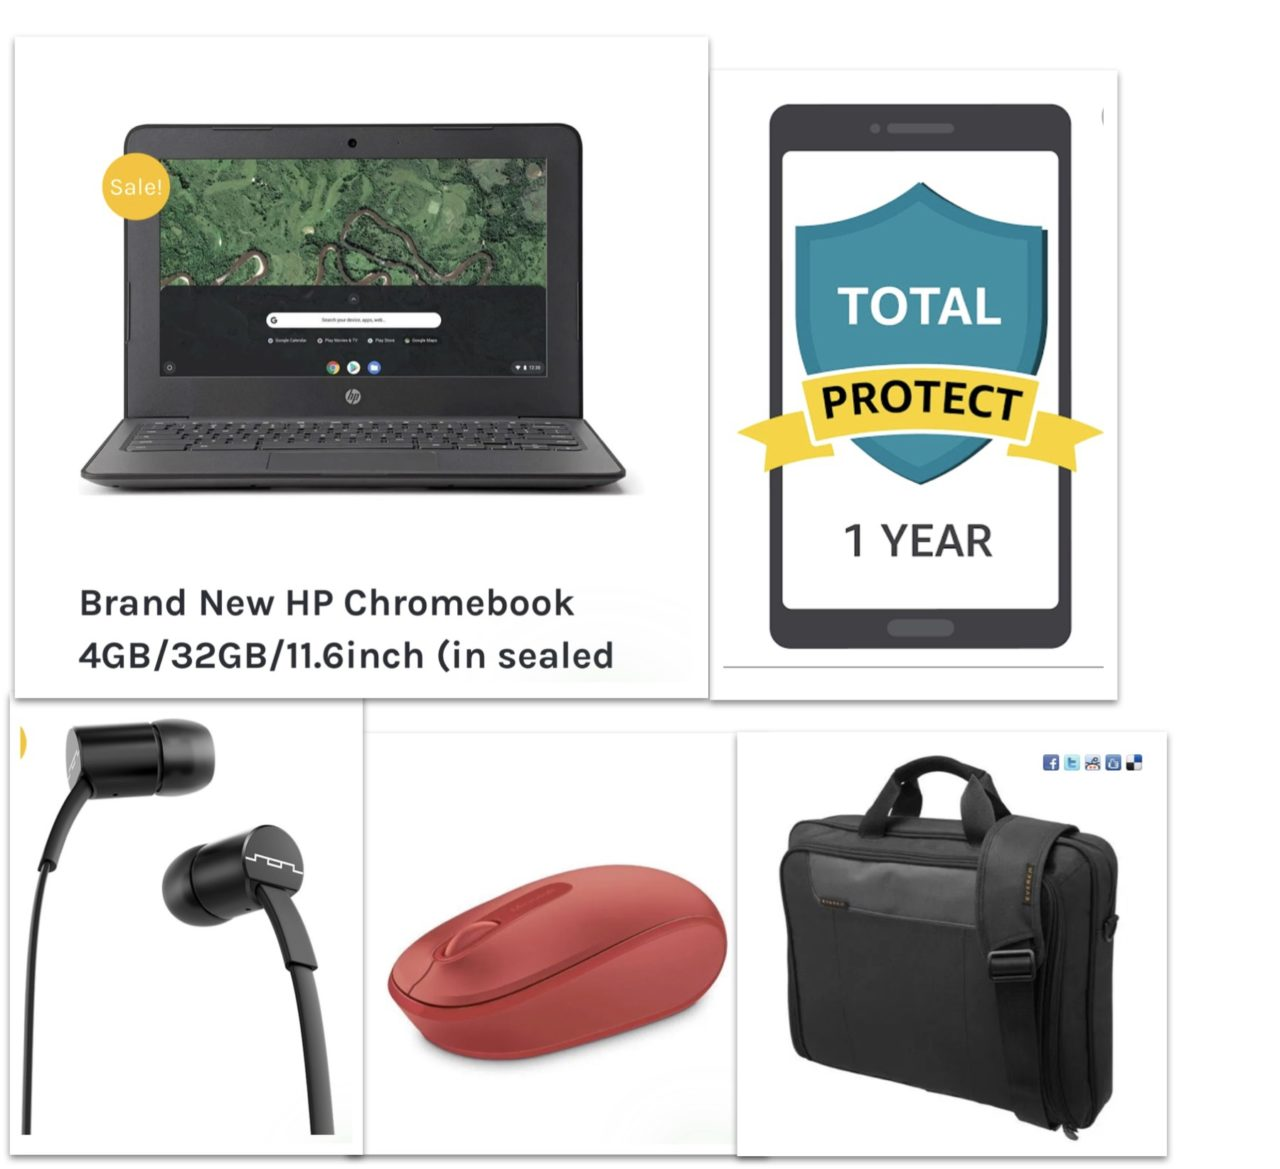 New HP Chromebook PREMIUM Bundle - Chromebook+Bag+Ear Phone+Mouse+12 Month Damage Protection